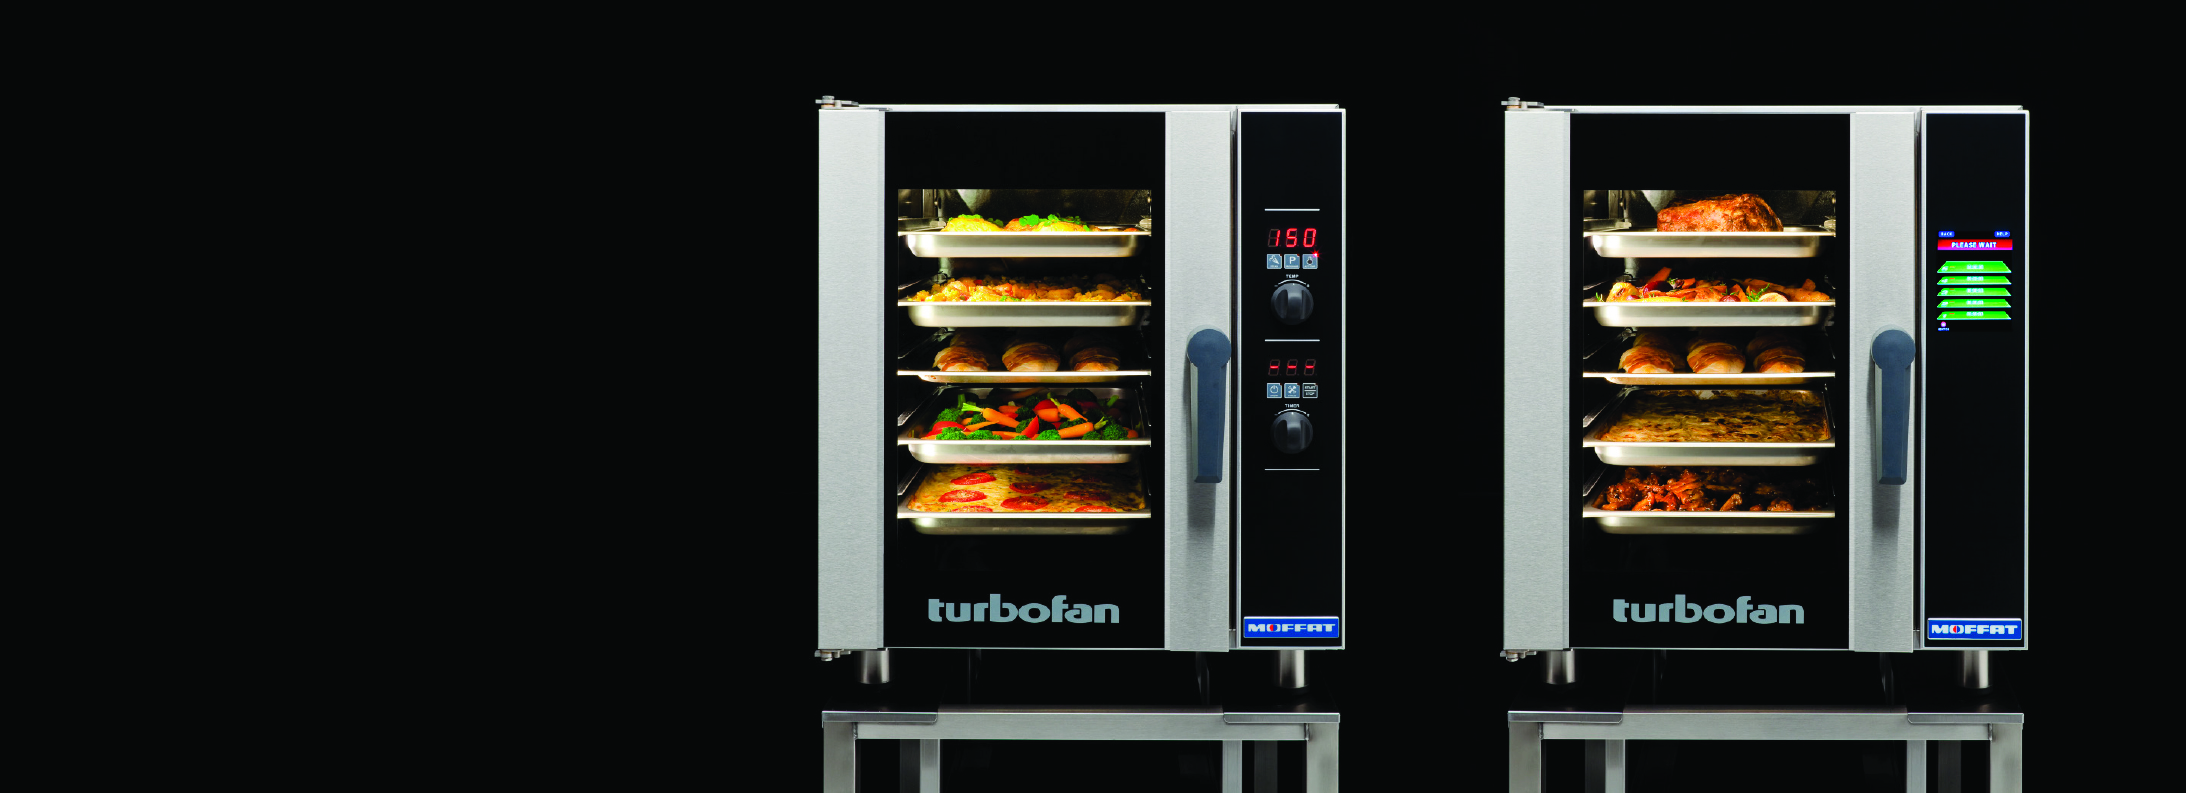 Powerful, versatile and very cost effective, the Turbofan E33 convection oven has been carefully developed to increase productivity without increasing unnecessary expense.